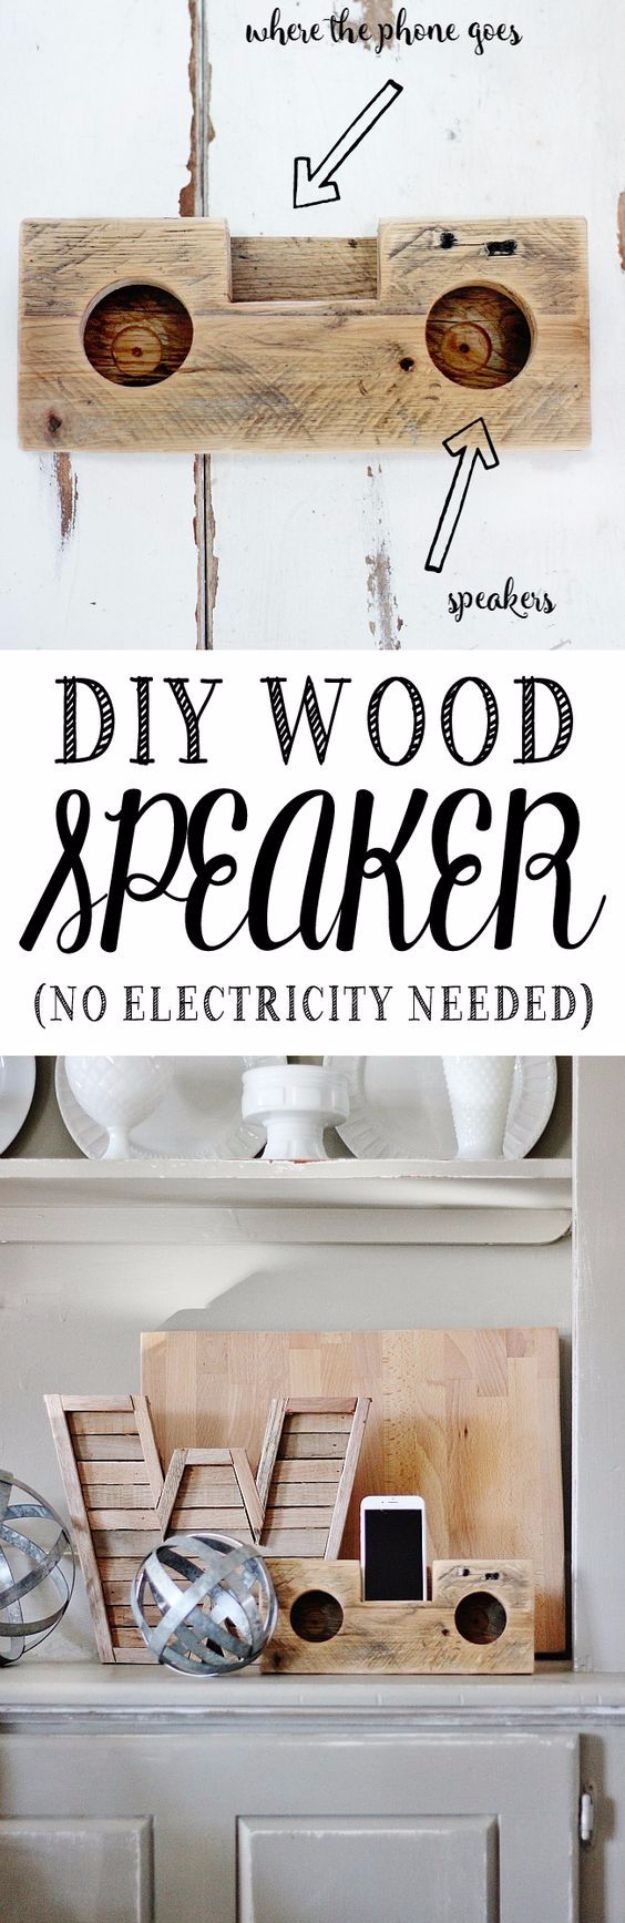 DIY Gadgets - DIY Wood Speaker - Homemade Gadget Ideas and Projects for Men, Women, Teens and Kids - Steampunk Inventions, How To Build Easy Electronics, Cool Spy Gear and Do It Yourself Tech Toys #gadgets #diy #stem #diytoys